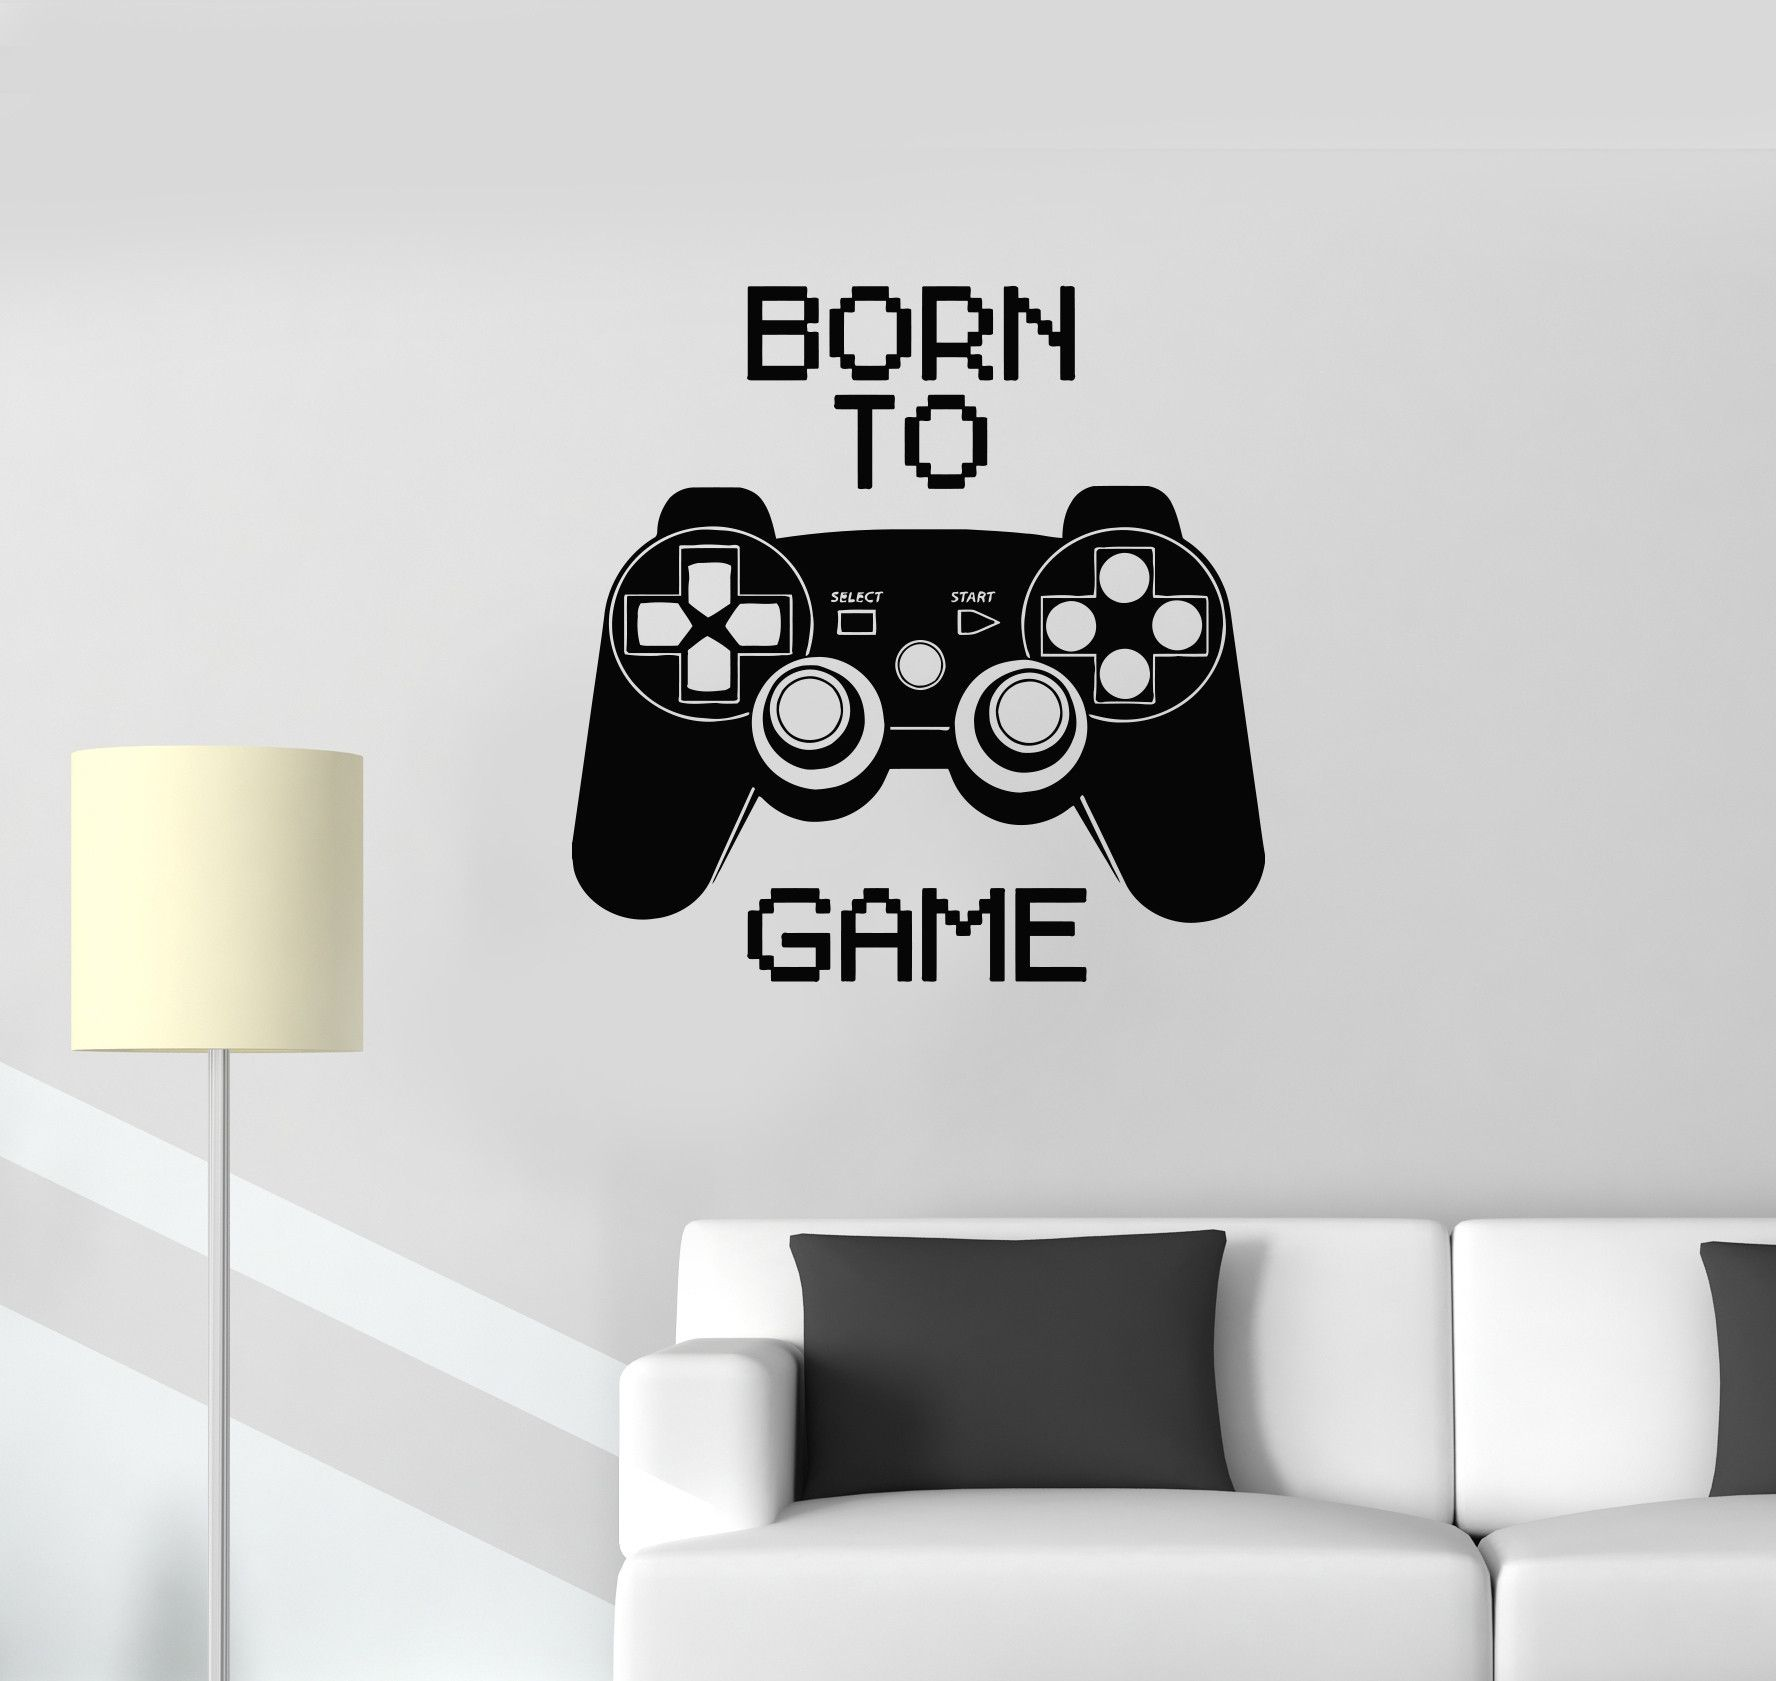 radecal choose your weapon  video game gaming vinyl decal wall  - vinyl decal quote video game computer joystick gaming teen boys room wallstickers (ig)